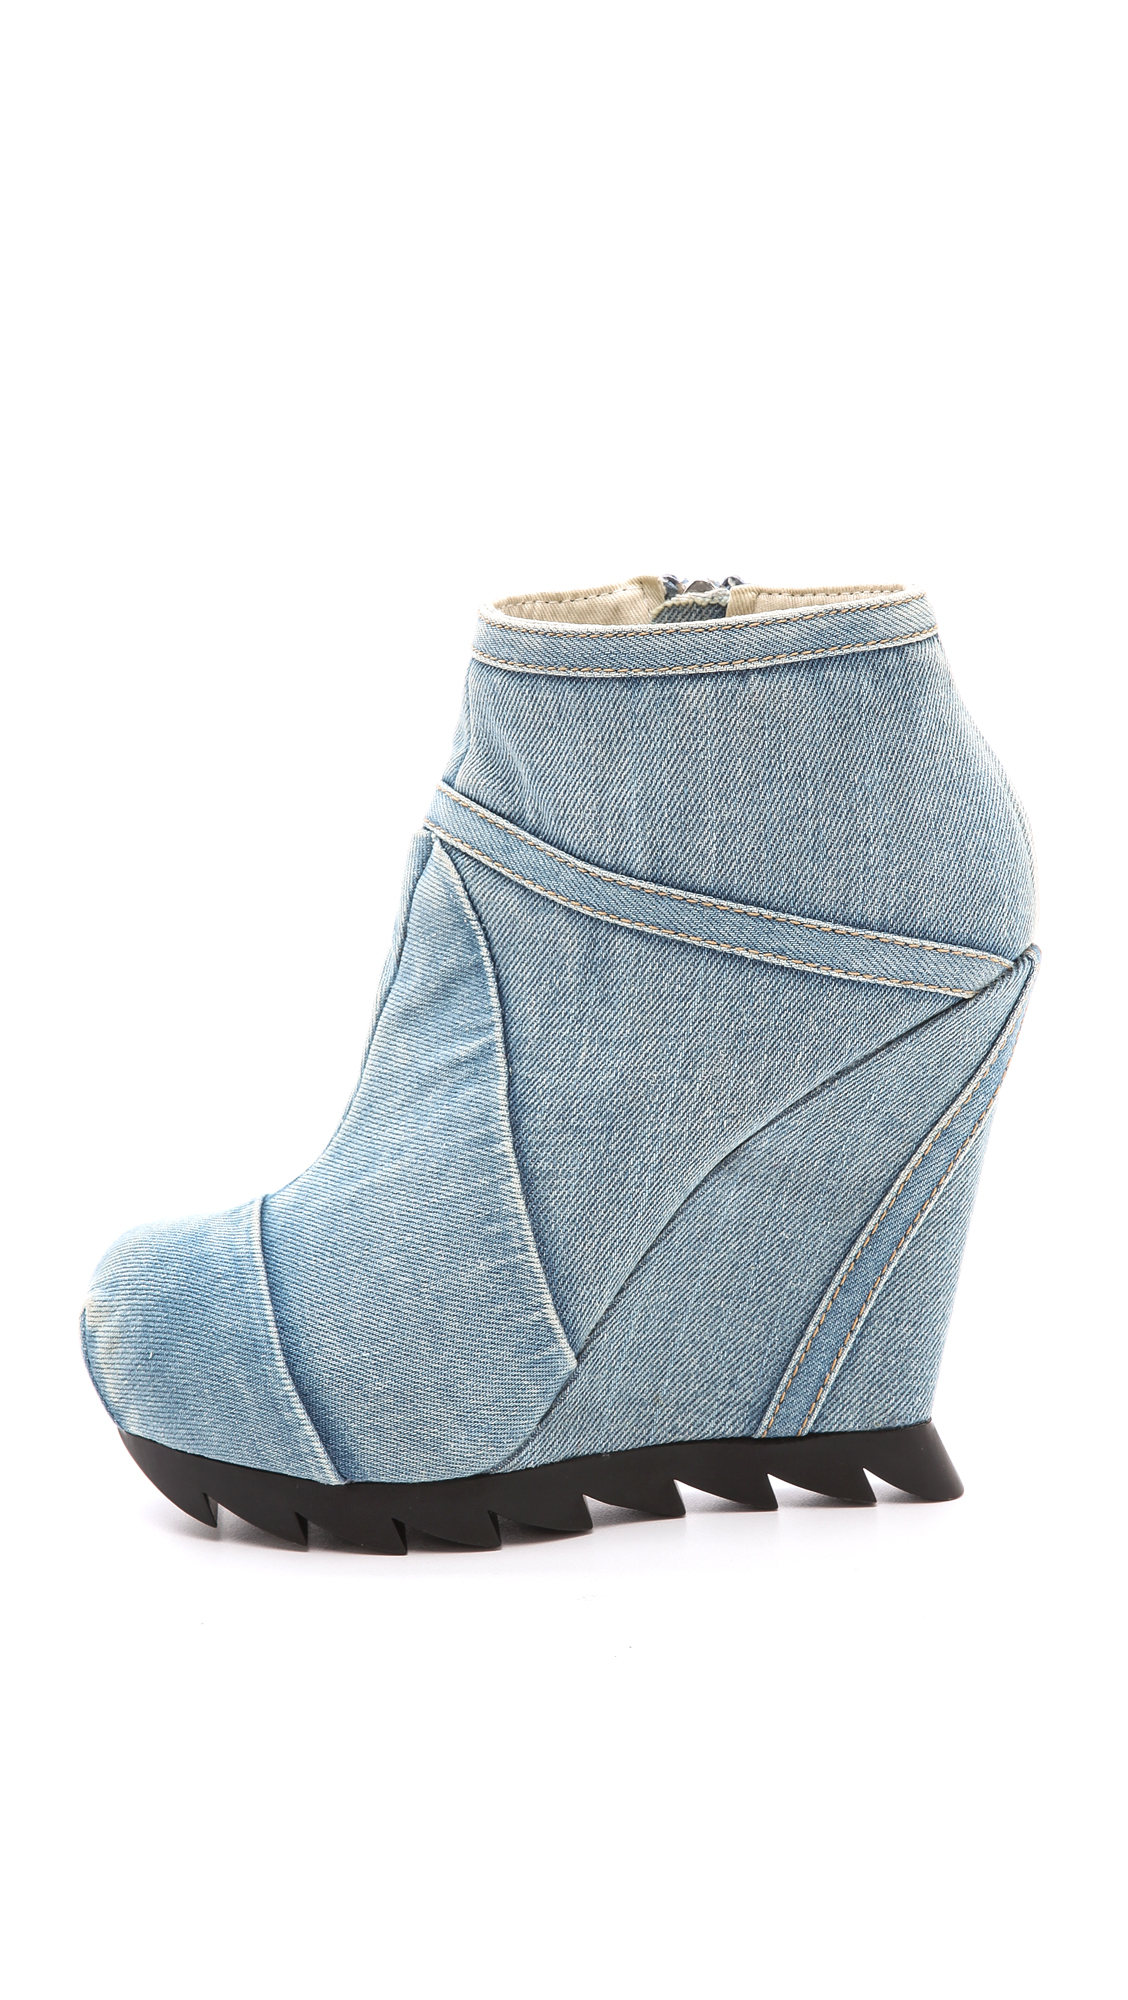 781c4d61b52 Lyst - Camilla Skovgaard Seams Denim Wedge Booties in Blue